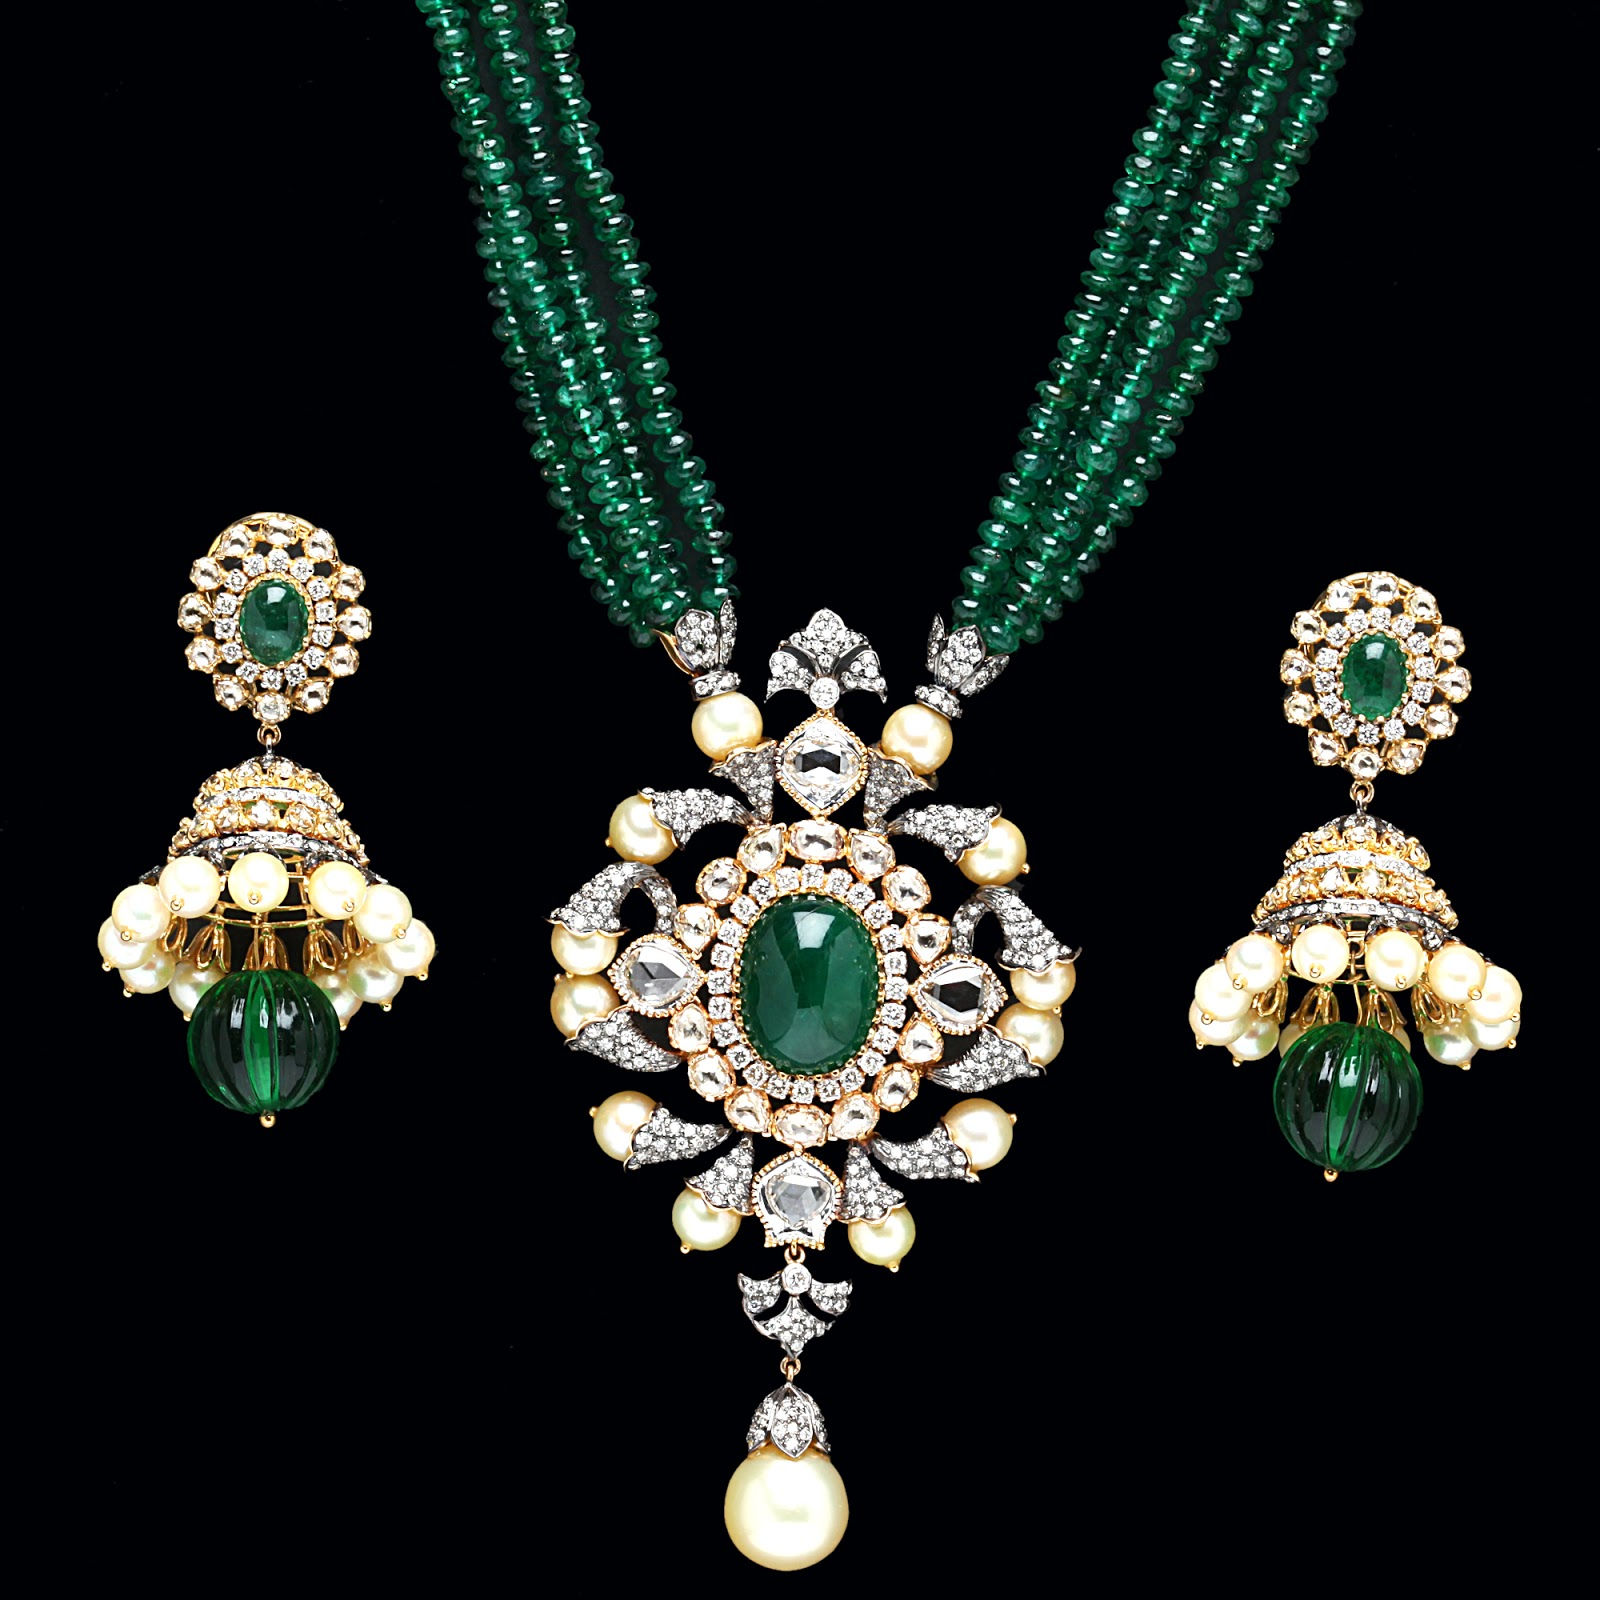 Pai jewellers gold necklace designs latest indian jewellery designs - Emerald Pendant Sets From Pc Jewellers